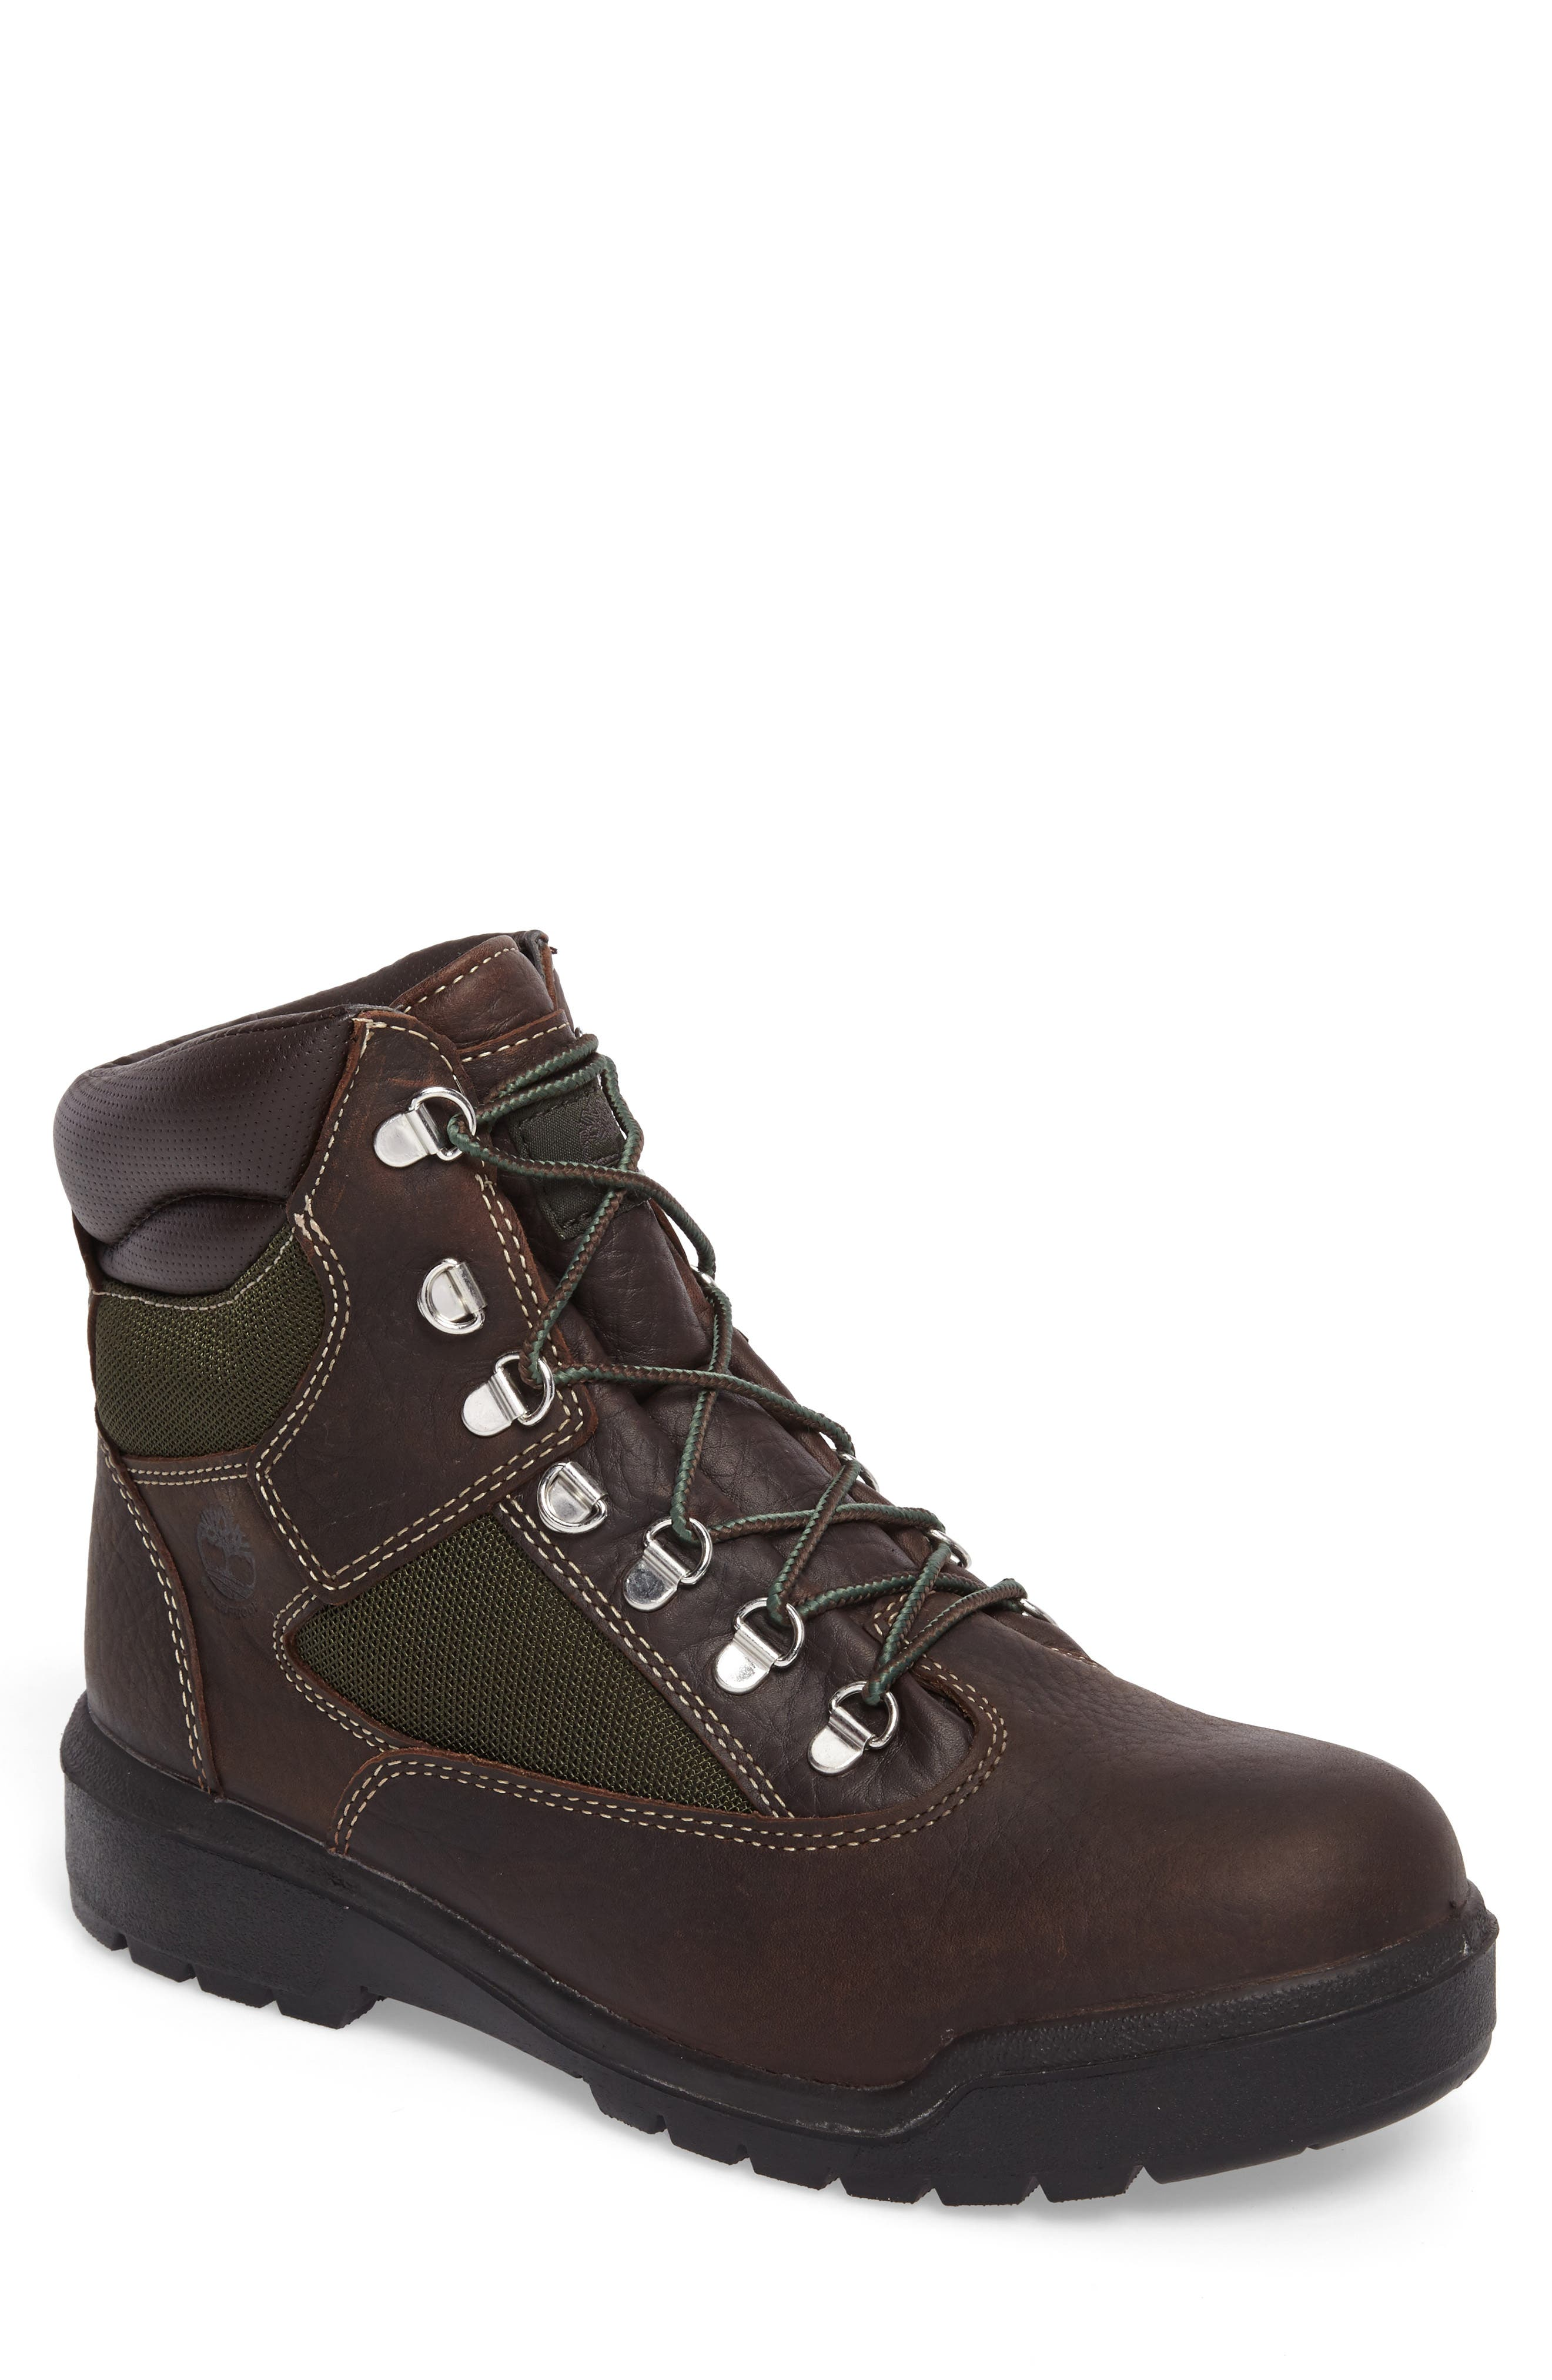 Field Waterproof Winter Boot,                             Main thumbnail 1, color,